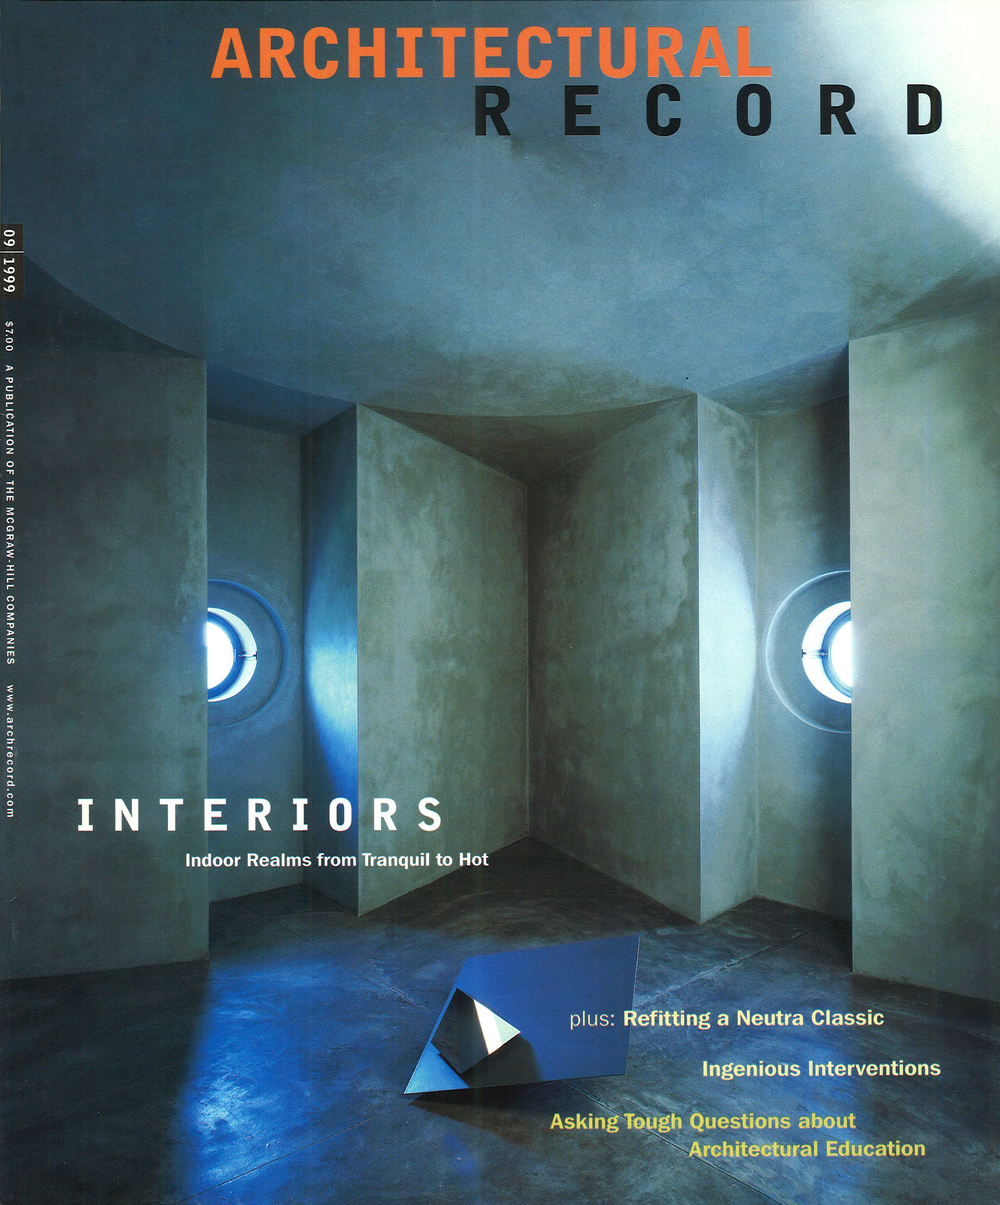 NOR_Architectural Record_Sept1999_Cover.jpg